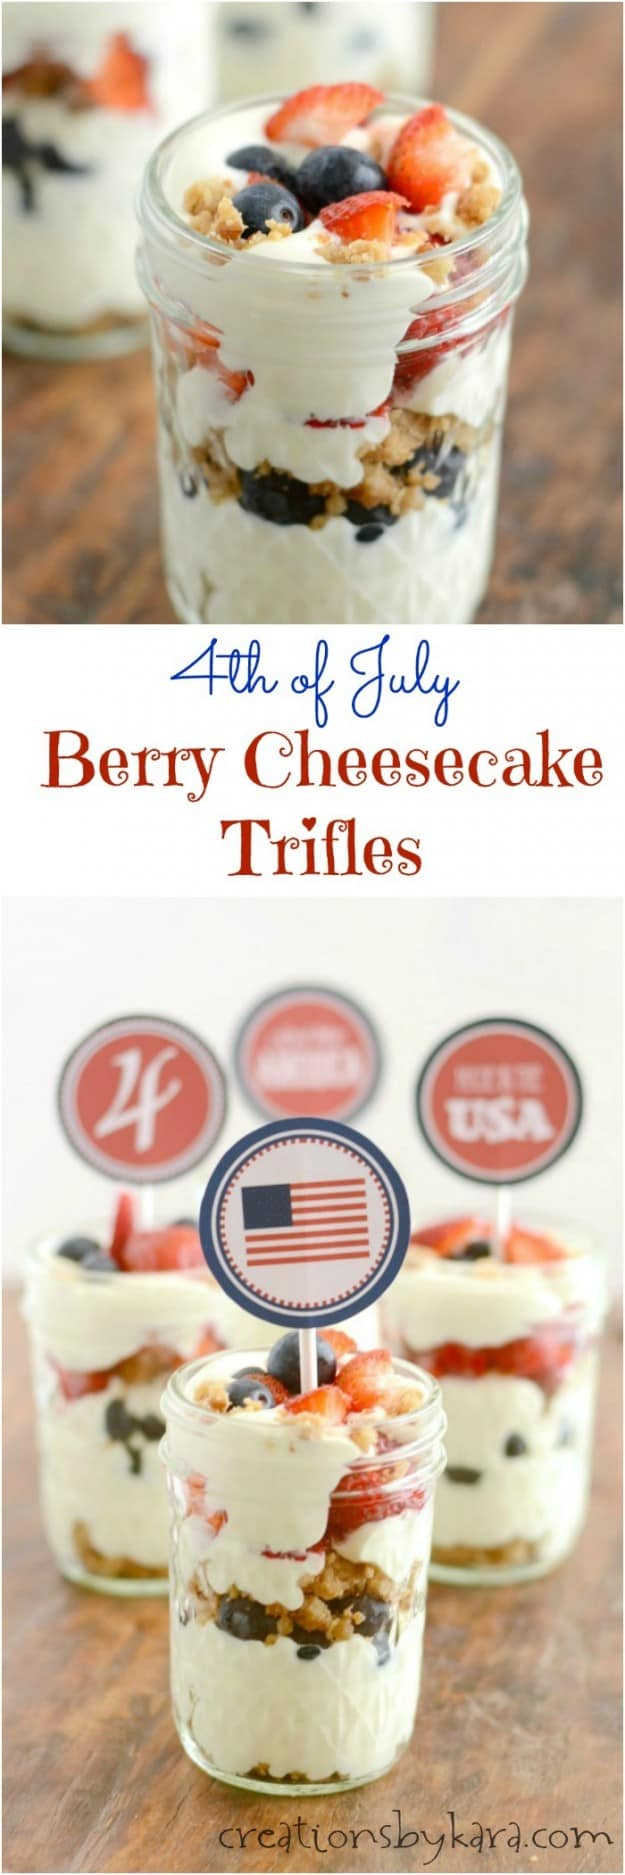 4th of July Berry Cheesecake Trifles